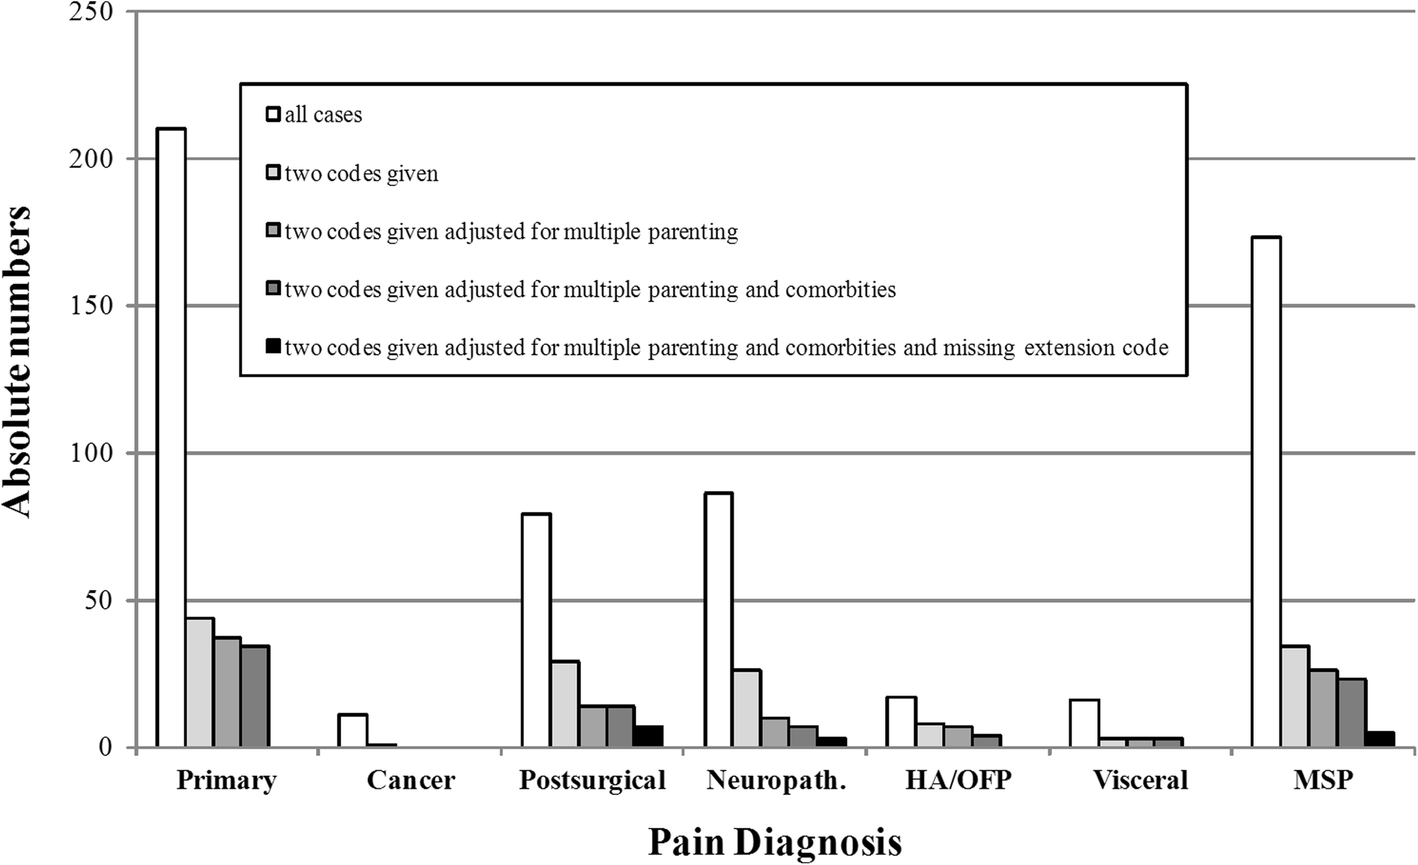 Pilot field testing of the chronic pain classification for ICD-11